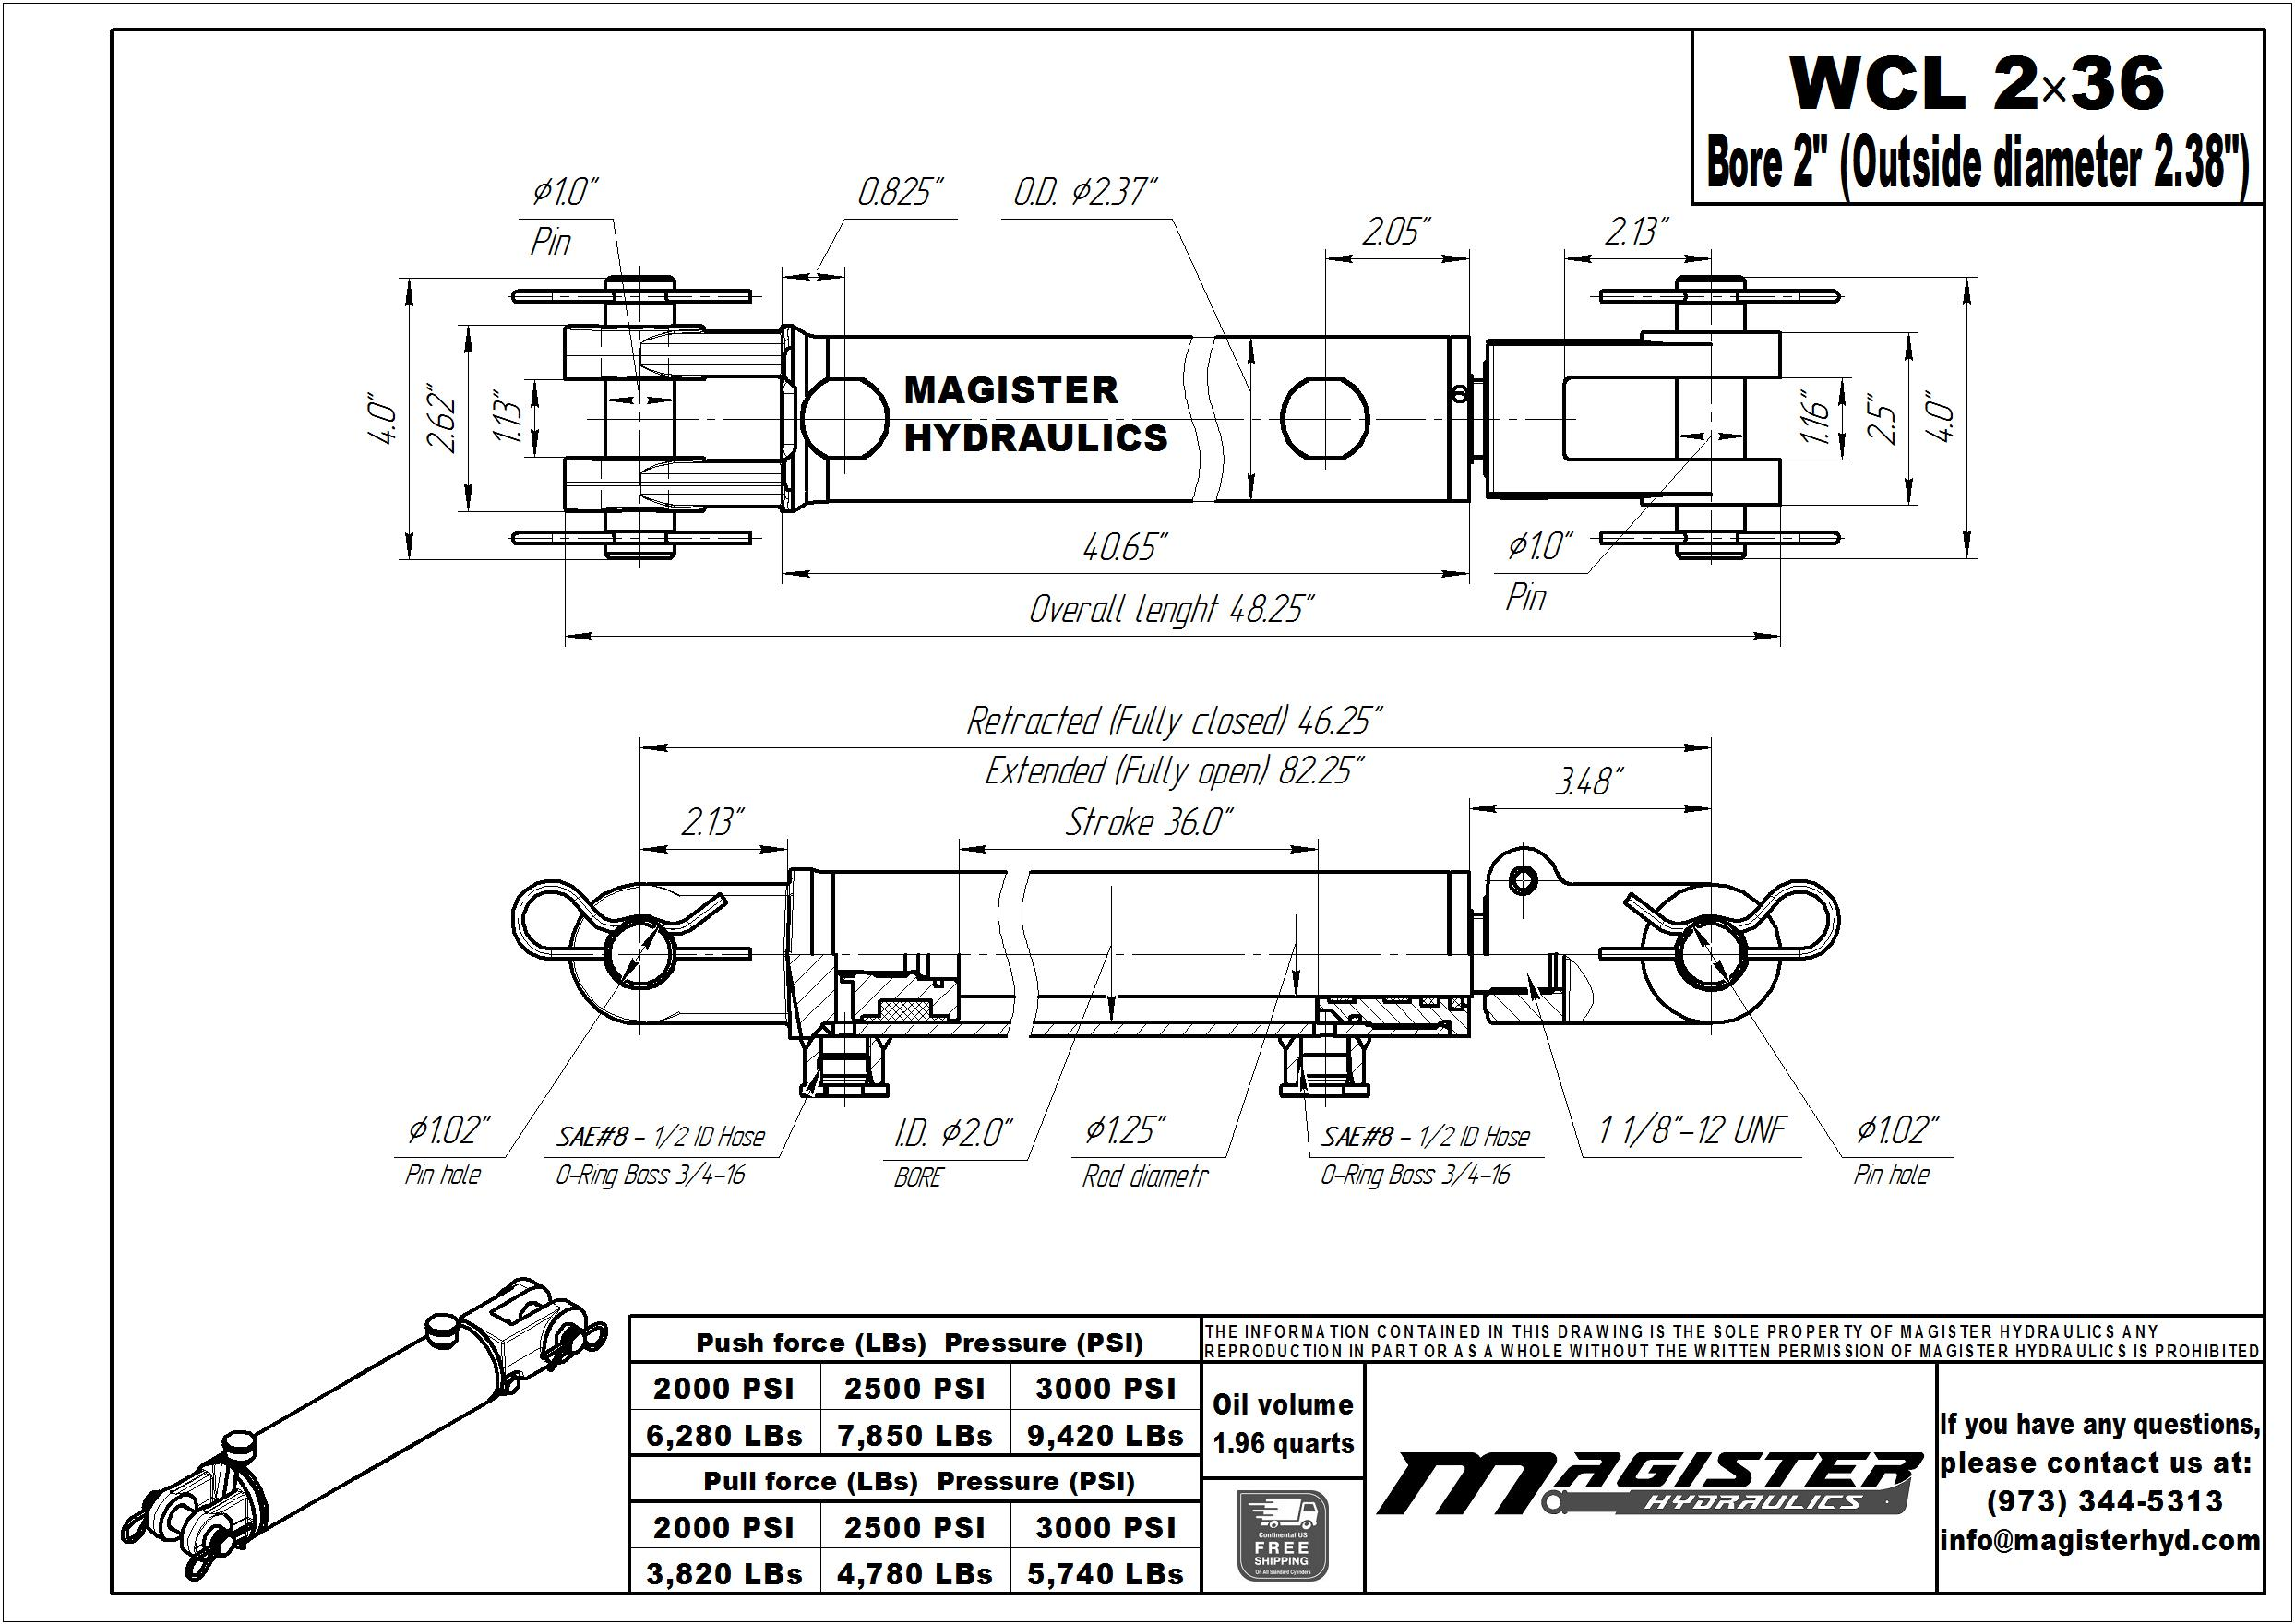 2 bore x 36 stroke hydraulic cylinder, welded clevis double acting cylinder | Magister Hydraulics